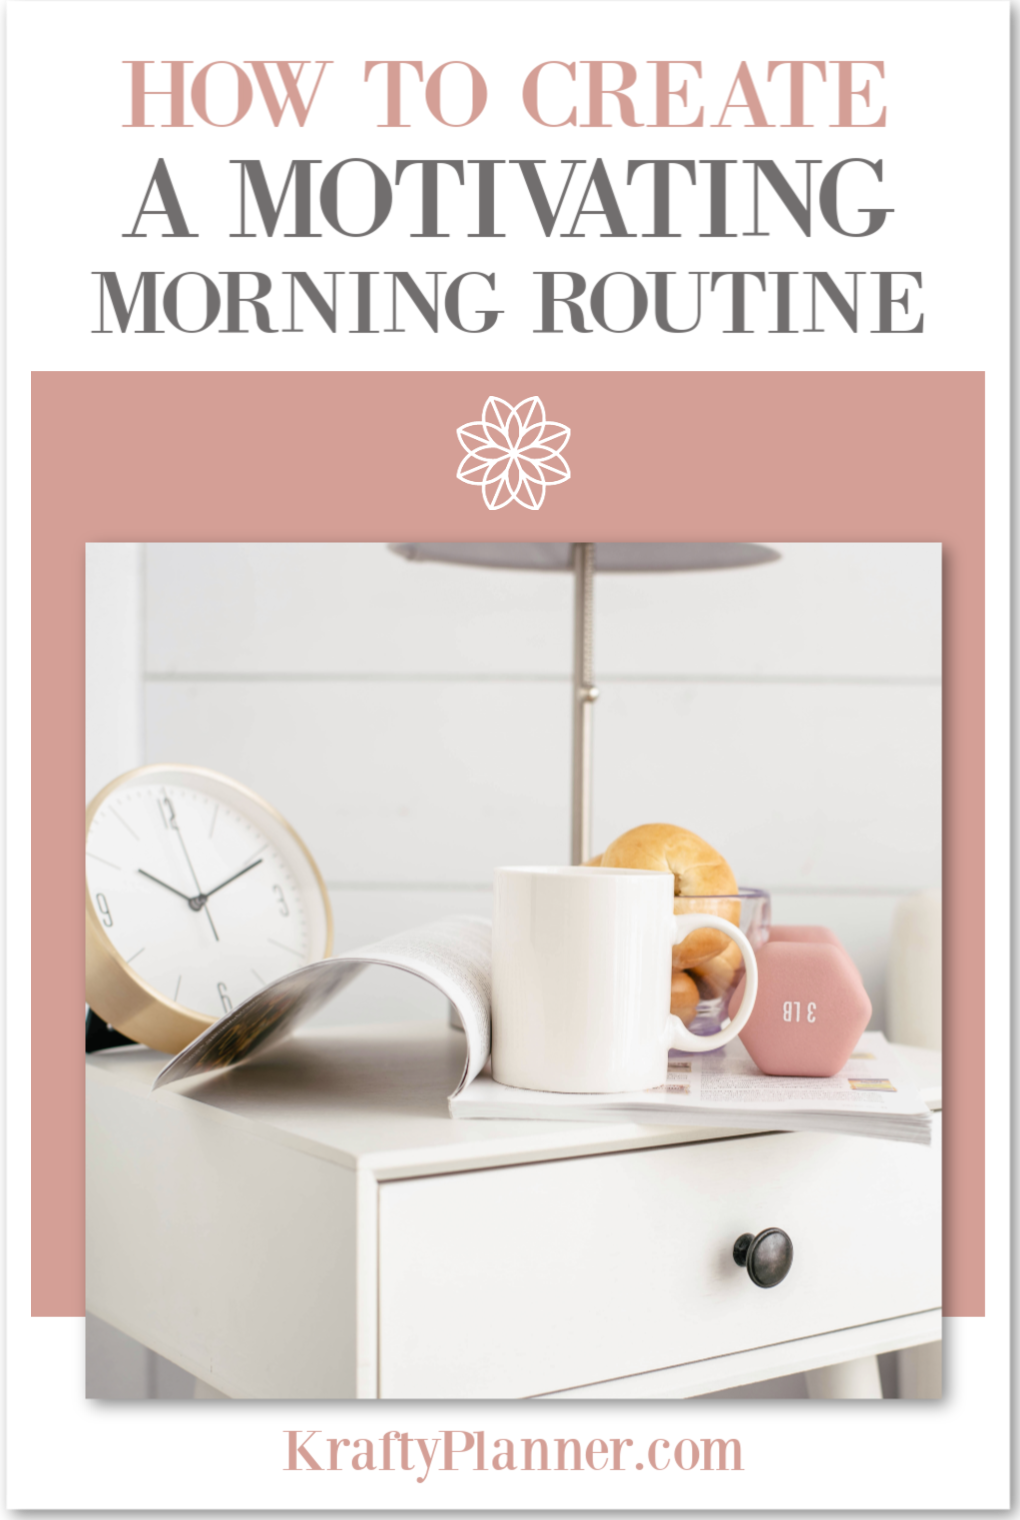 How to Create a Motivating Morning Routine PIN 3.png